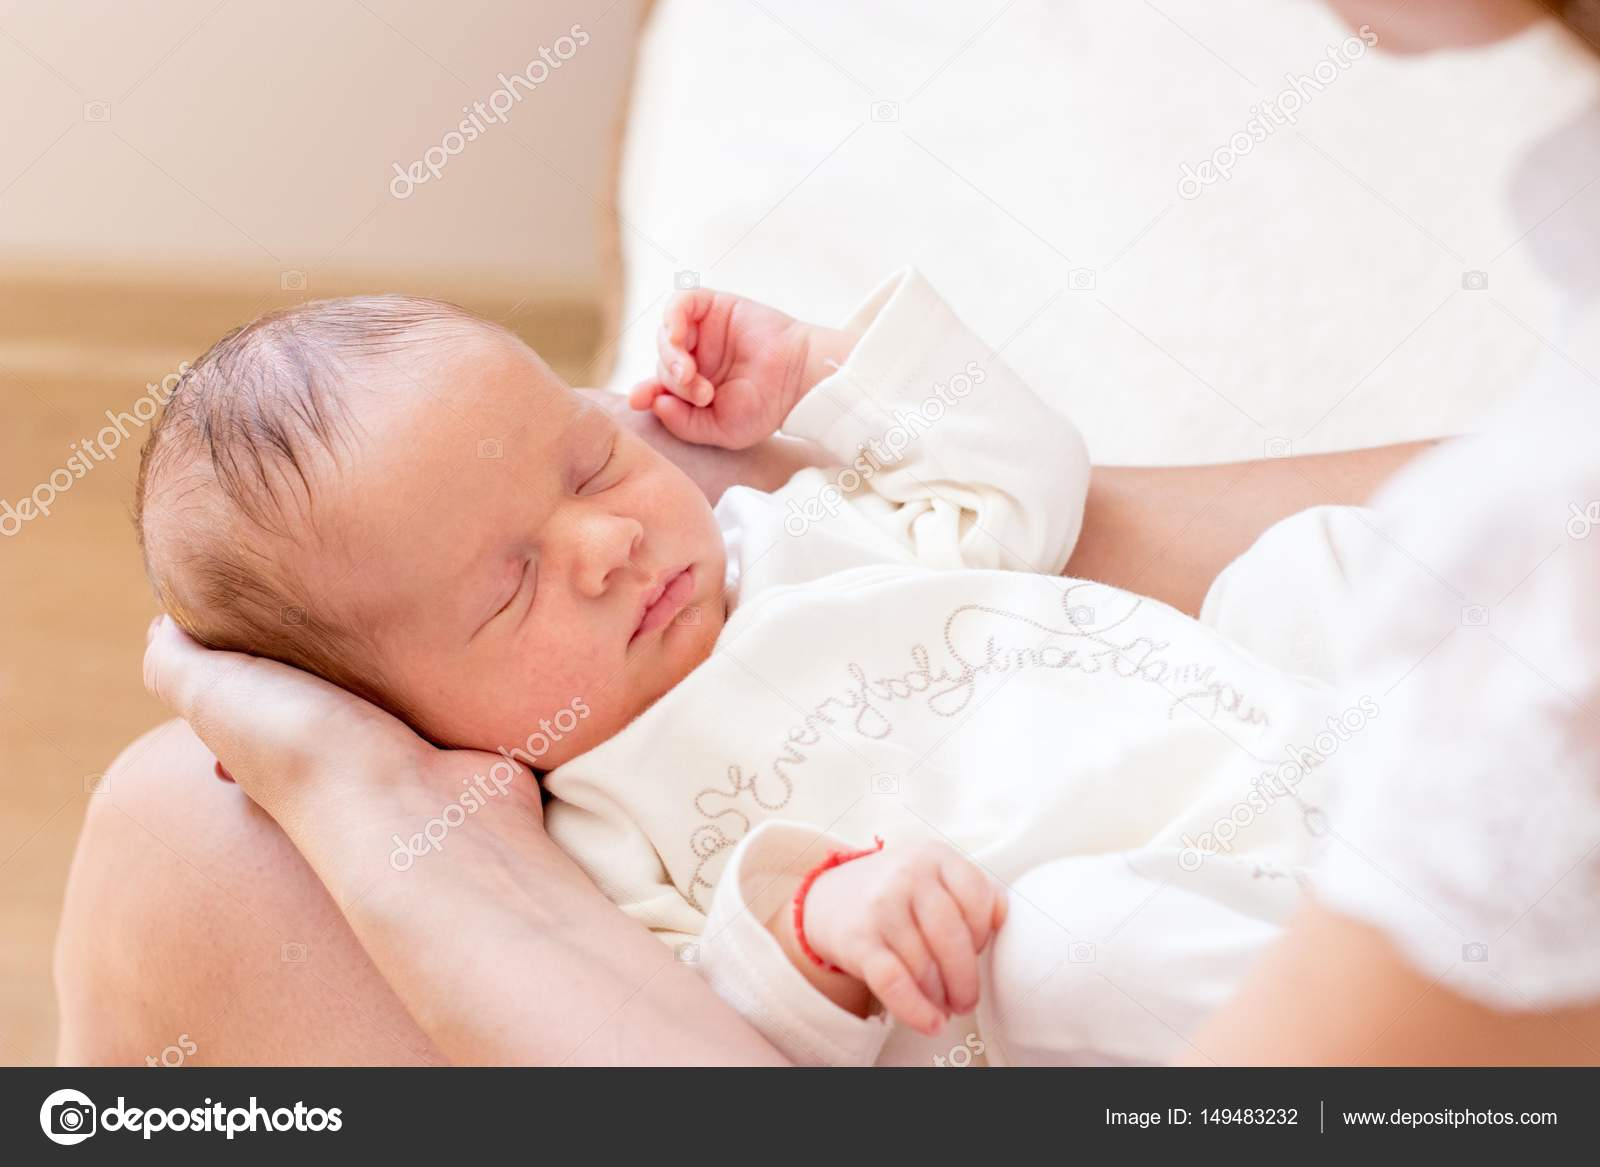 Beautiful delicate picture of the child and mother photo legs handles baby closeup lovely babys legs newborns photo by karelia89